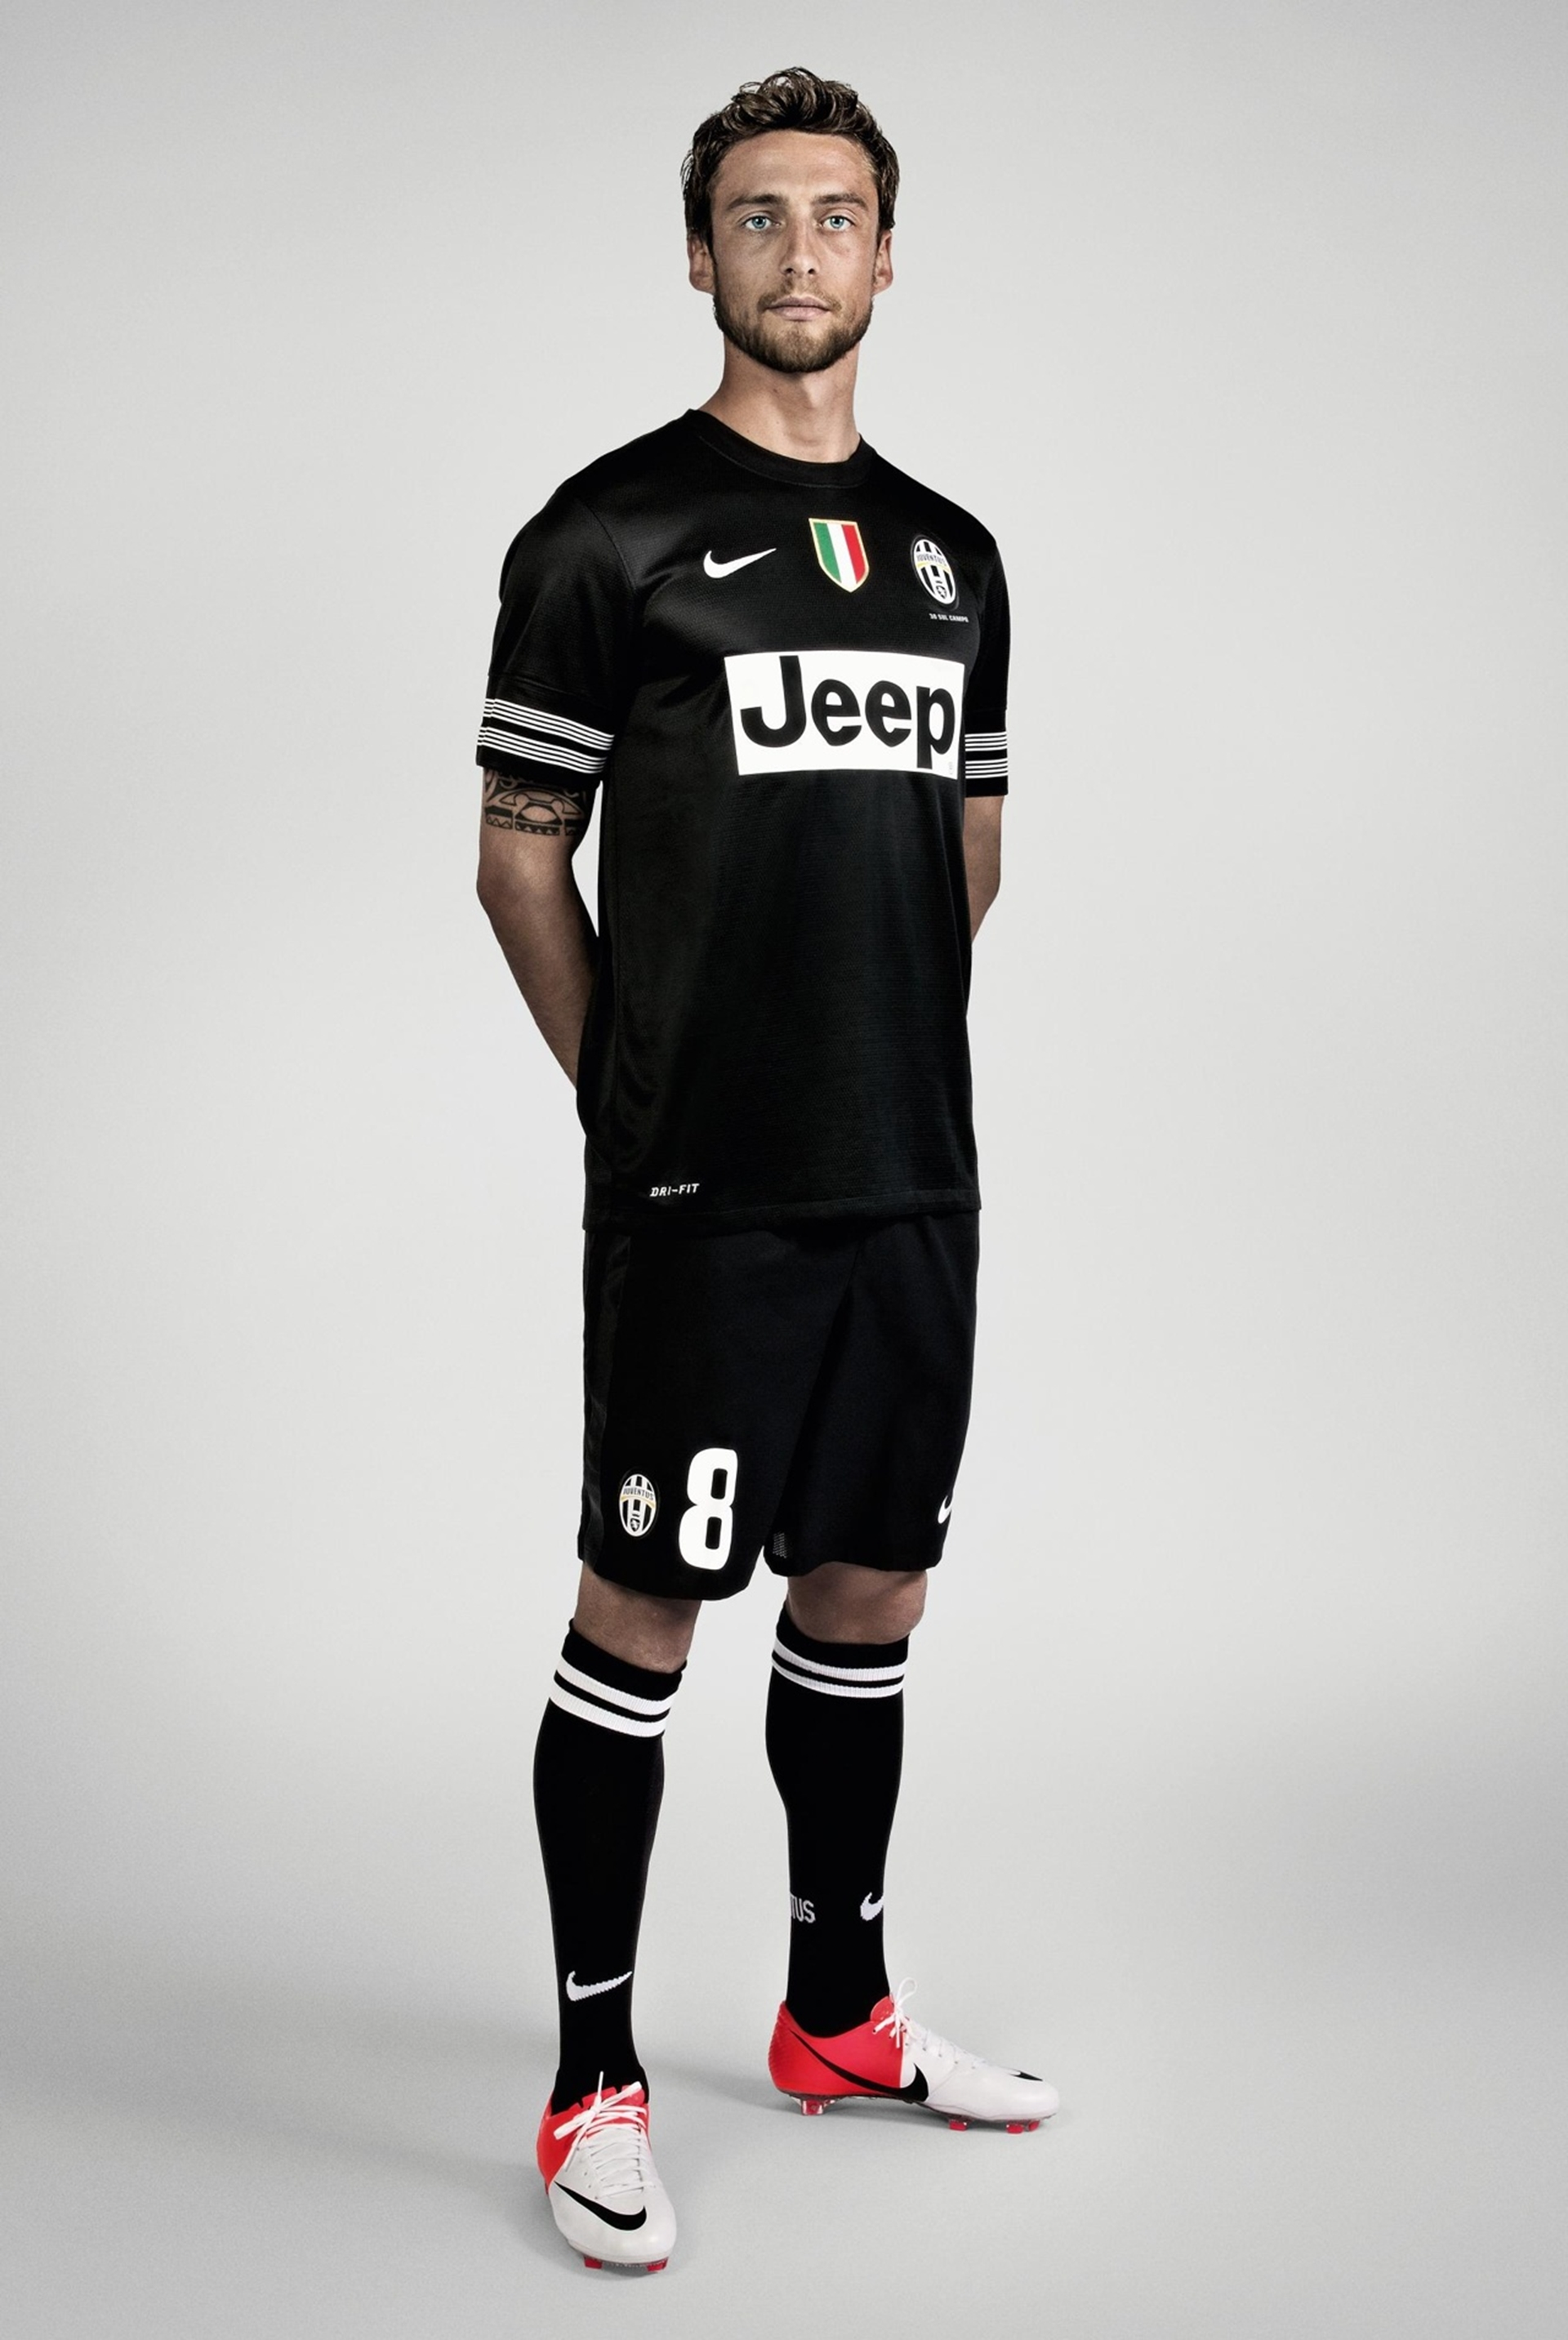 9d5ef5f132a THE JEEP BRAND DEBUTS ON NEW JUVENTUS FOOTBALL CLUB JERSEY